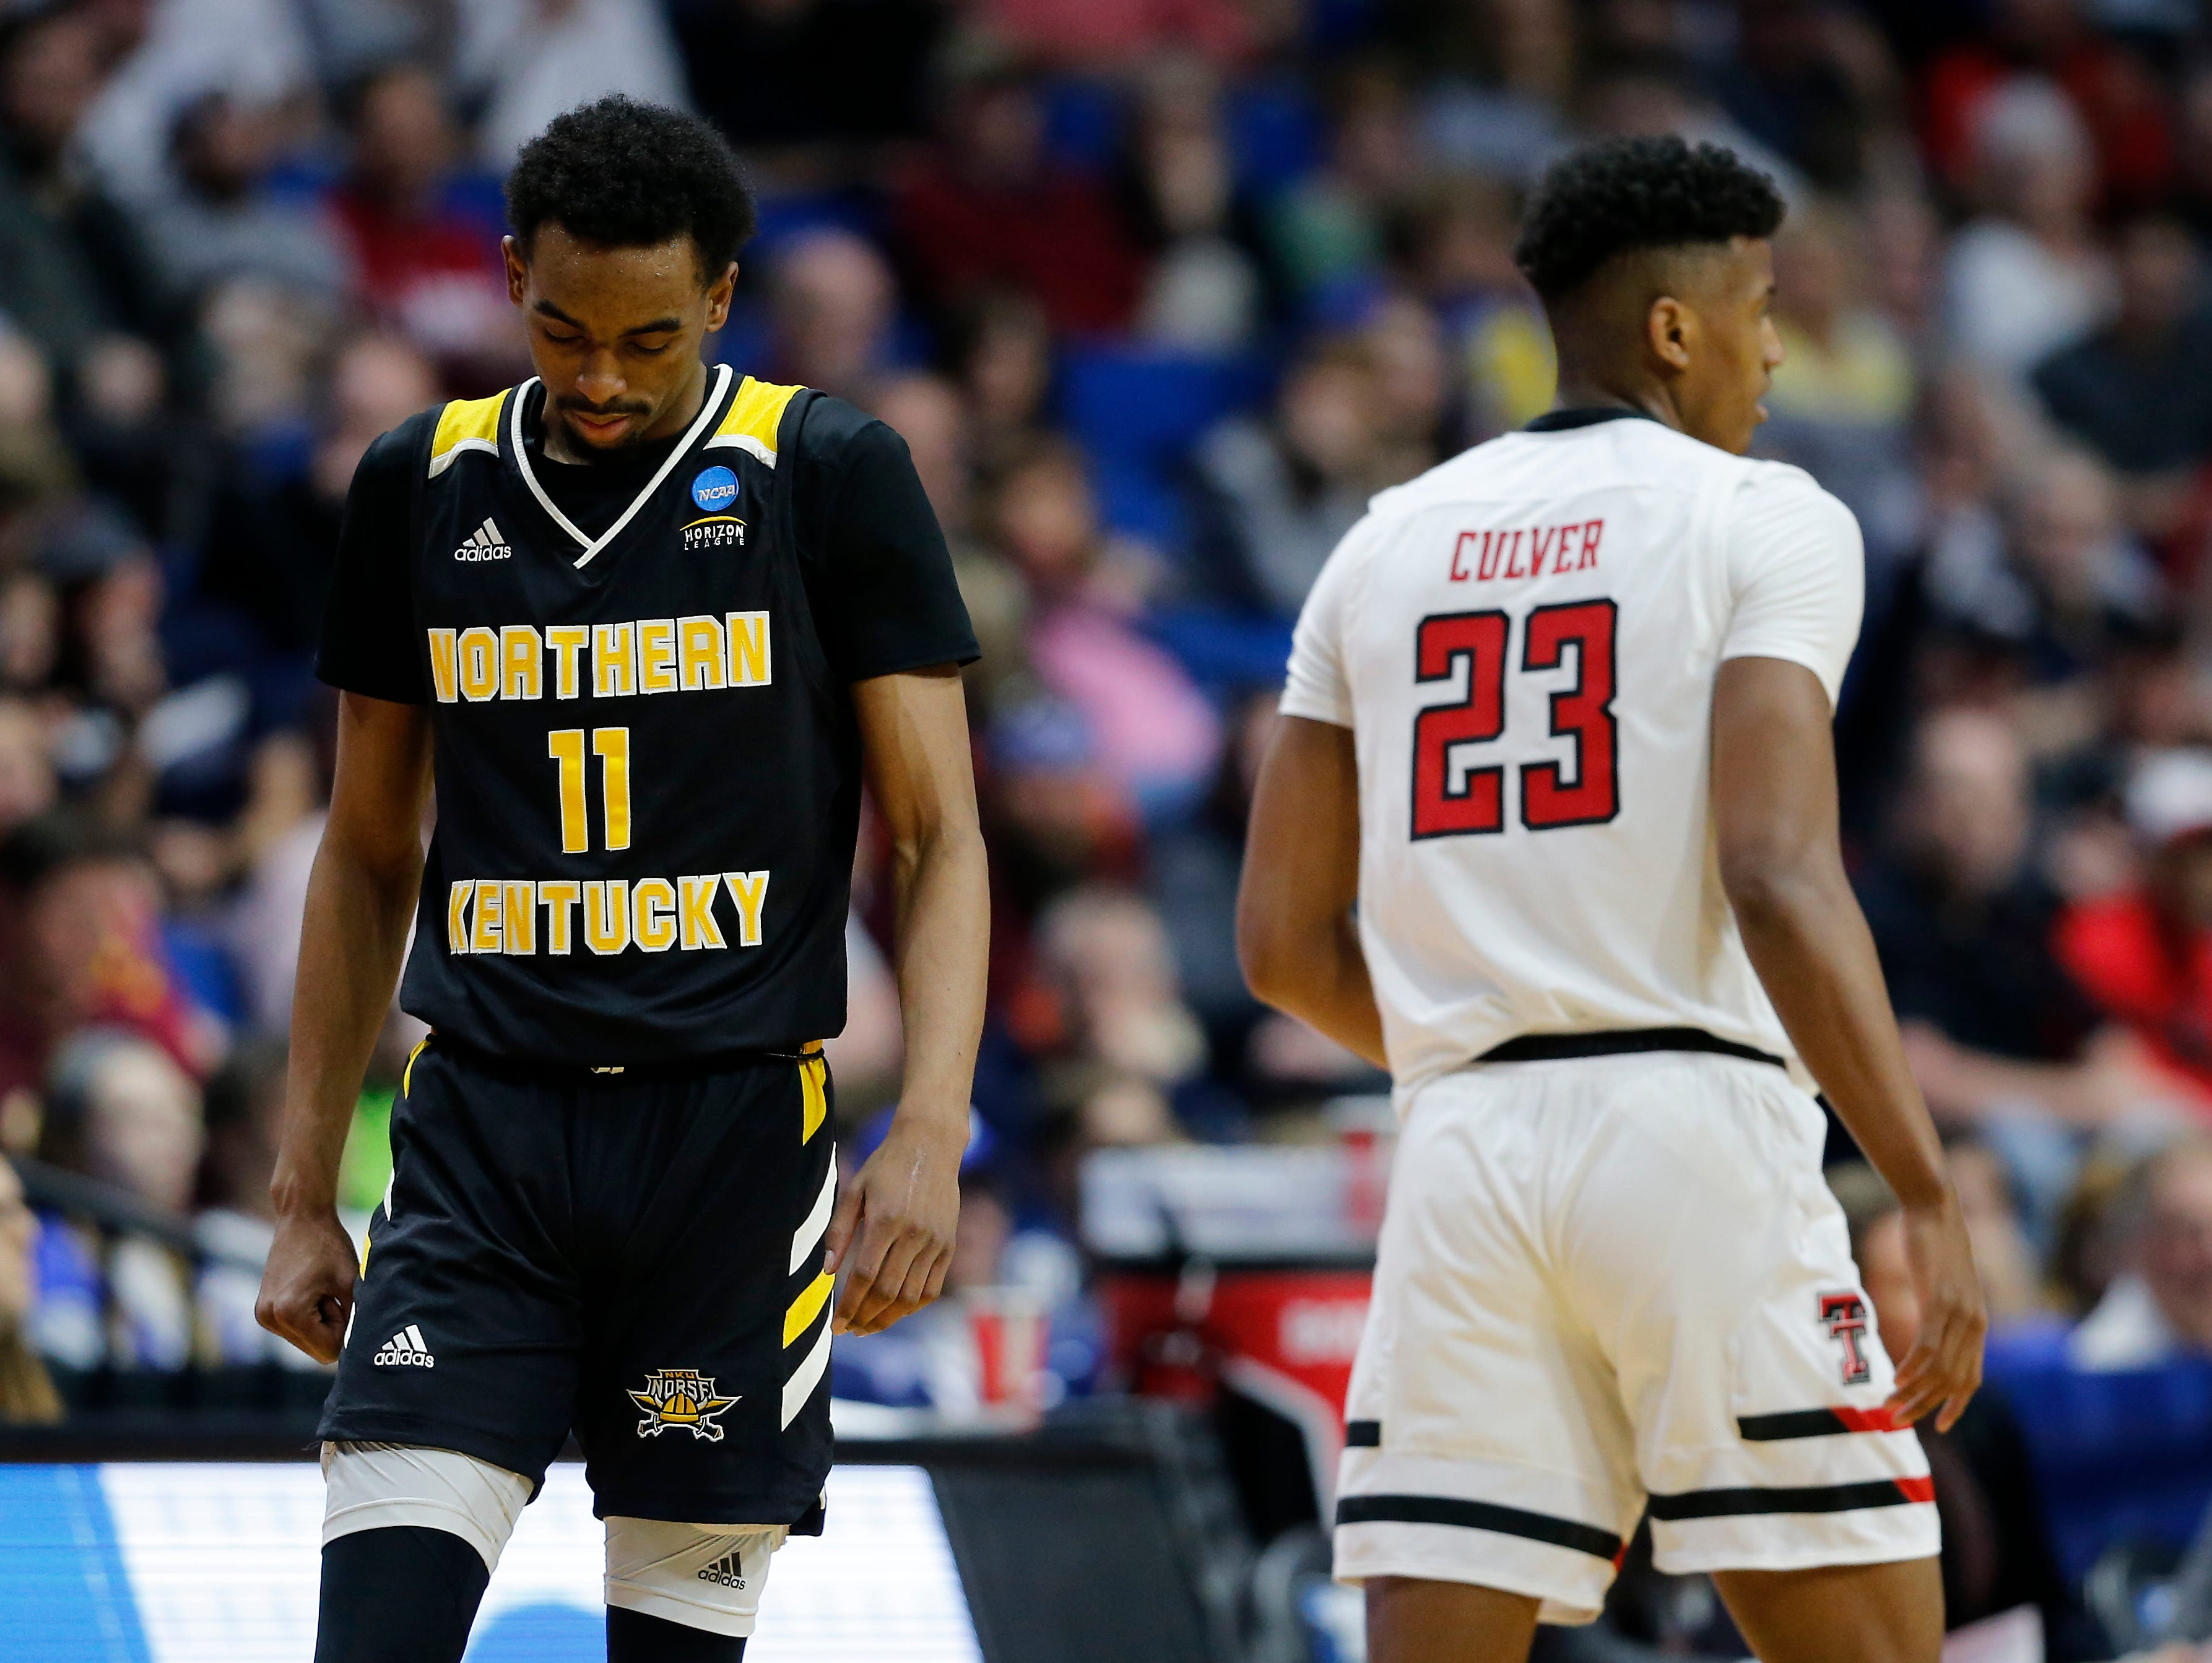 Northern Kentucky Norse guard Jalen Tate (11) goes back on defense after a turnover in the second half of the NCAA Tournament First Round game between the 14-seeded Northern Kentucky Norse and the 3-seeded Texas Tech Red Raiders the BOK Center in downtown Tulsa on Friday, March 22, 2019. NKU was knocked from the tournament with a 72-57 loss to the Red Raiders.